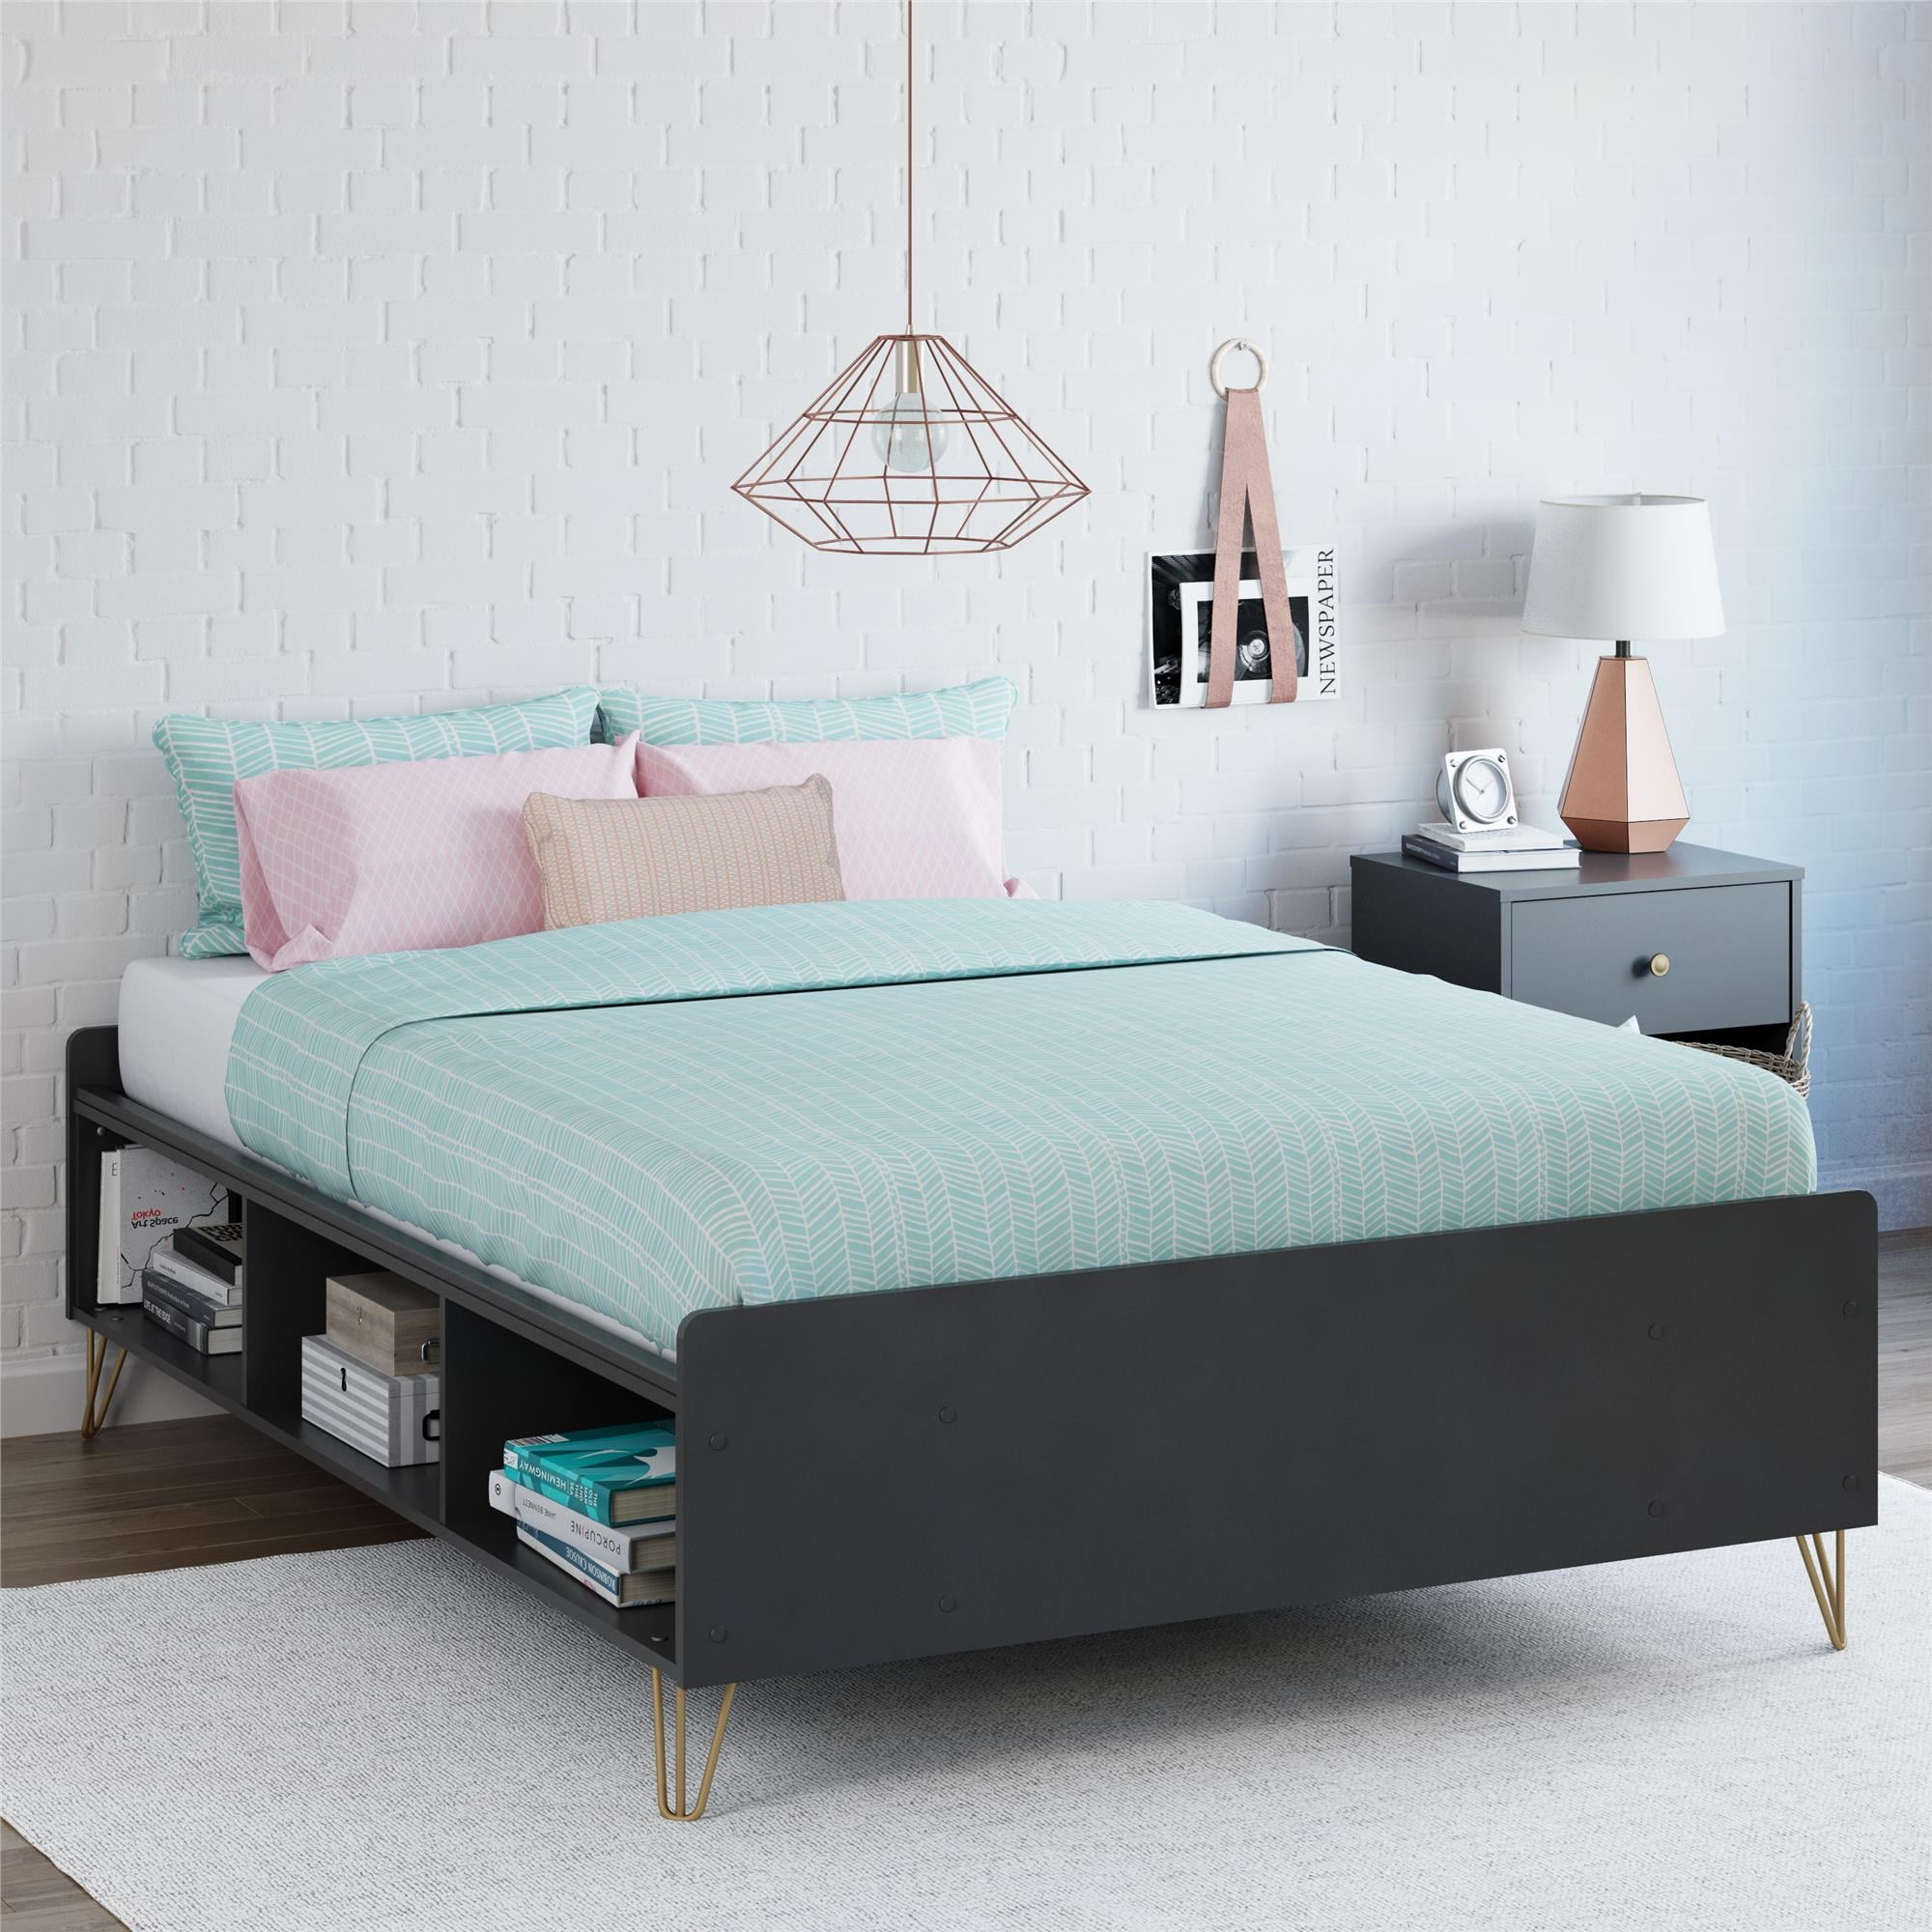 Best Furniture For Small Spaces | POPSUGAR Home